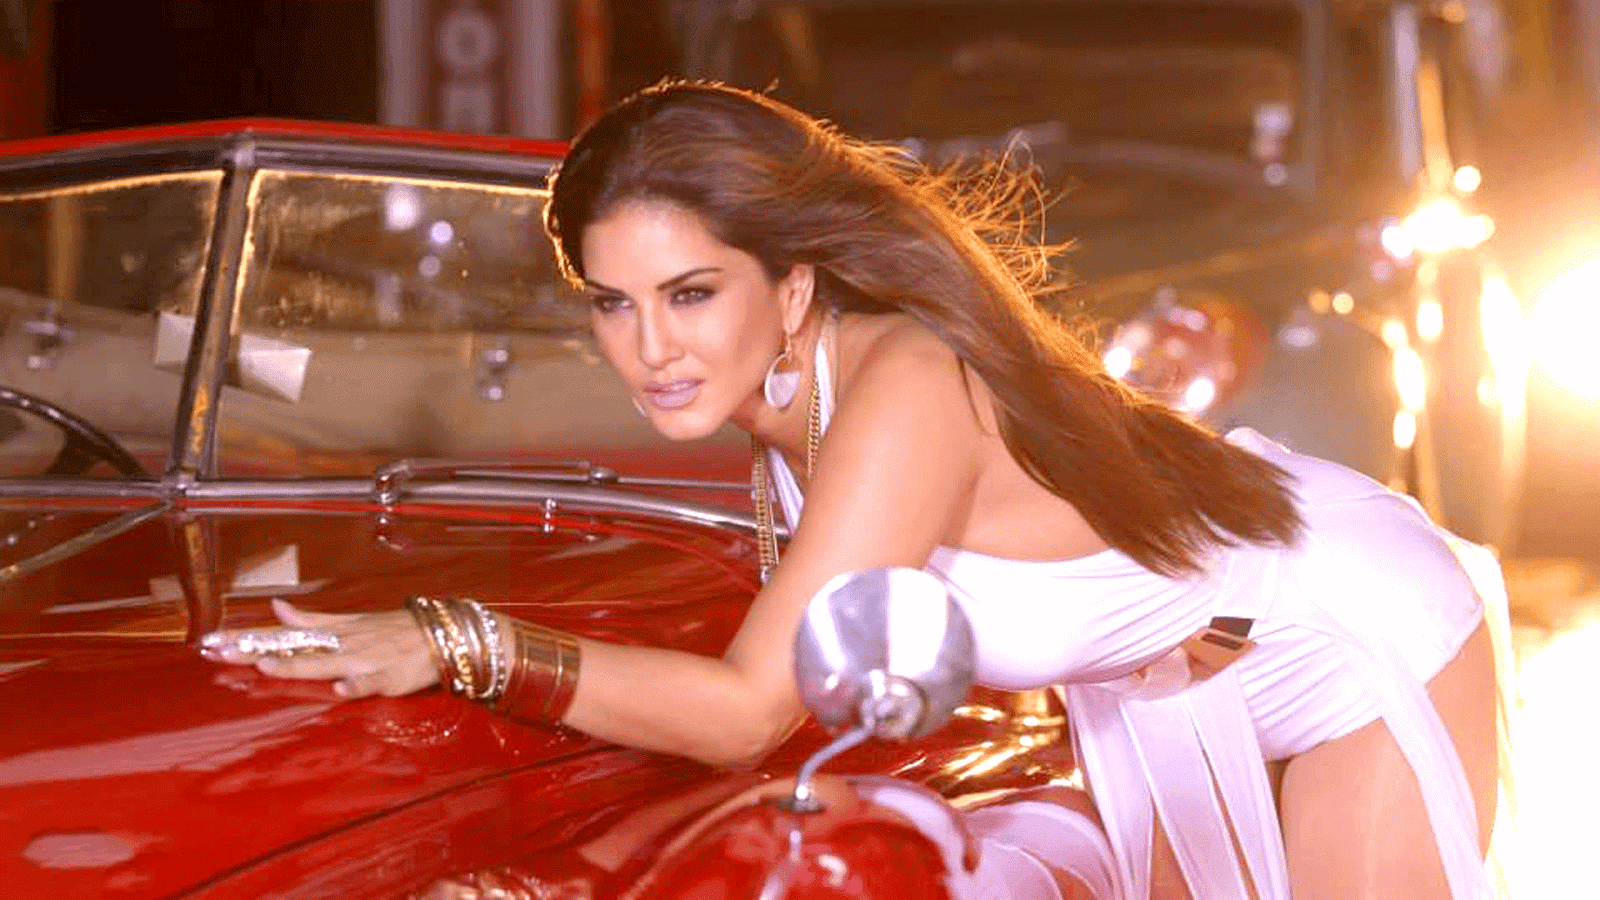 Sunny Leone Wallpapers Hd Download Free 1080P -8730